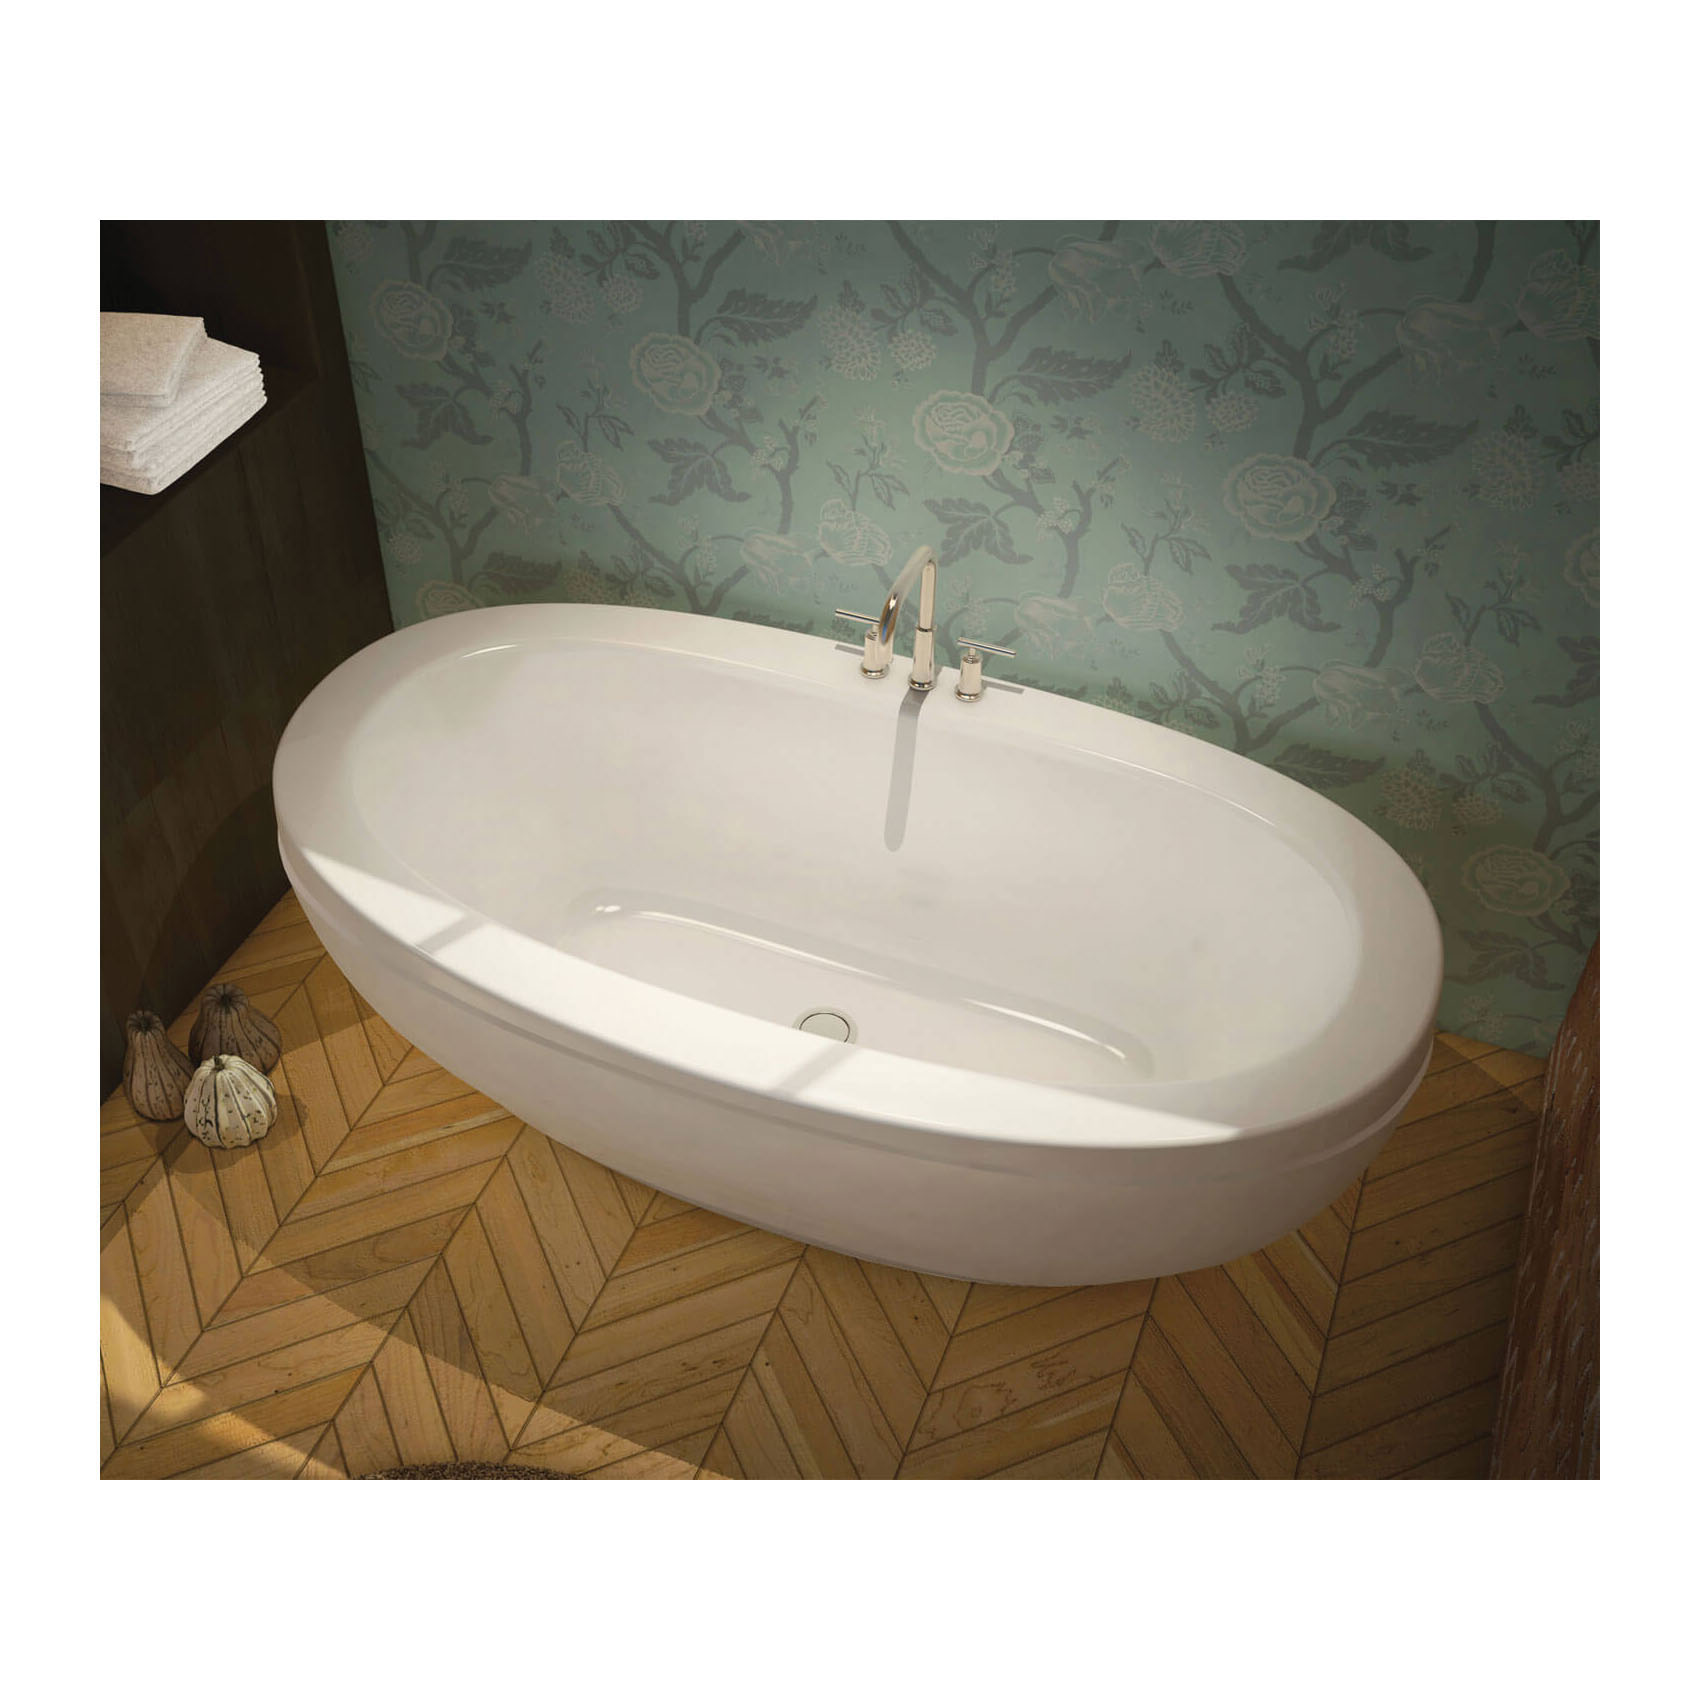 MAAX® 105516-000-001 Serenade® F 2-Piece Bathtub, Chromatherapy, 66-1/2 in L x 36-1/2 in W, Center Drain, White